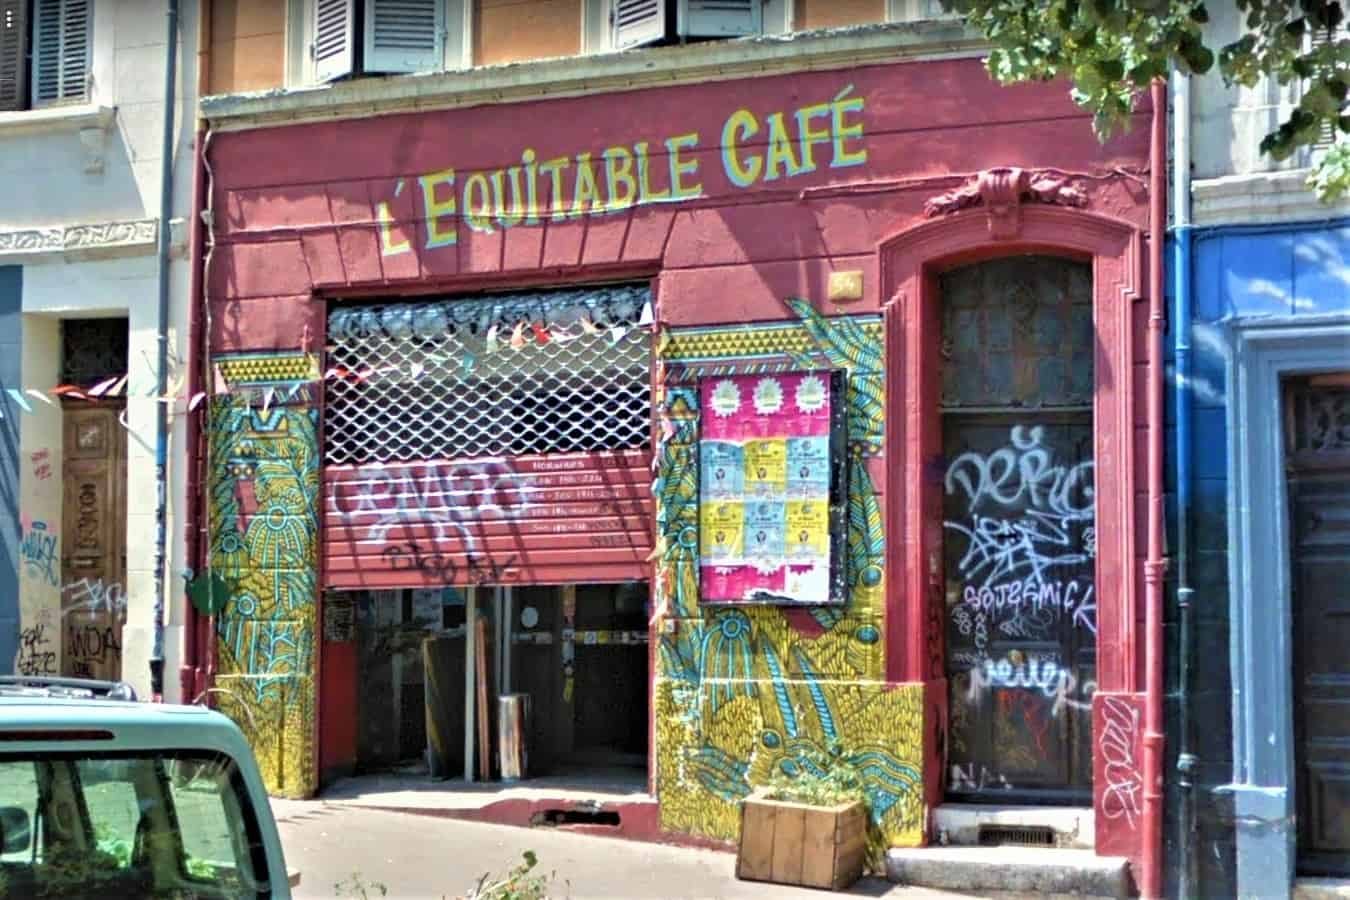 , L'équitable café ferme ses portes, Made in Marseille, Made in Marseille